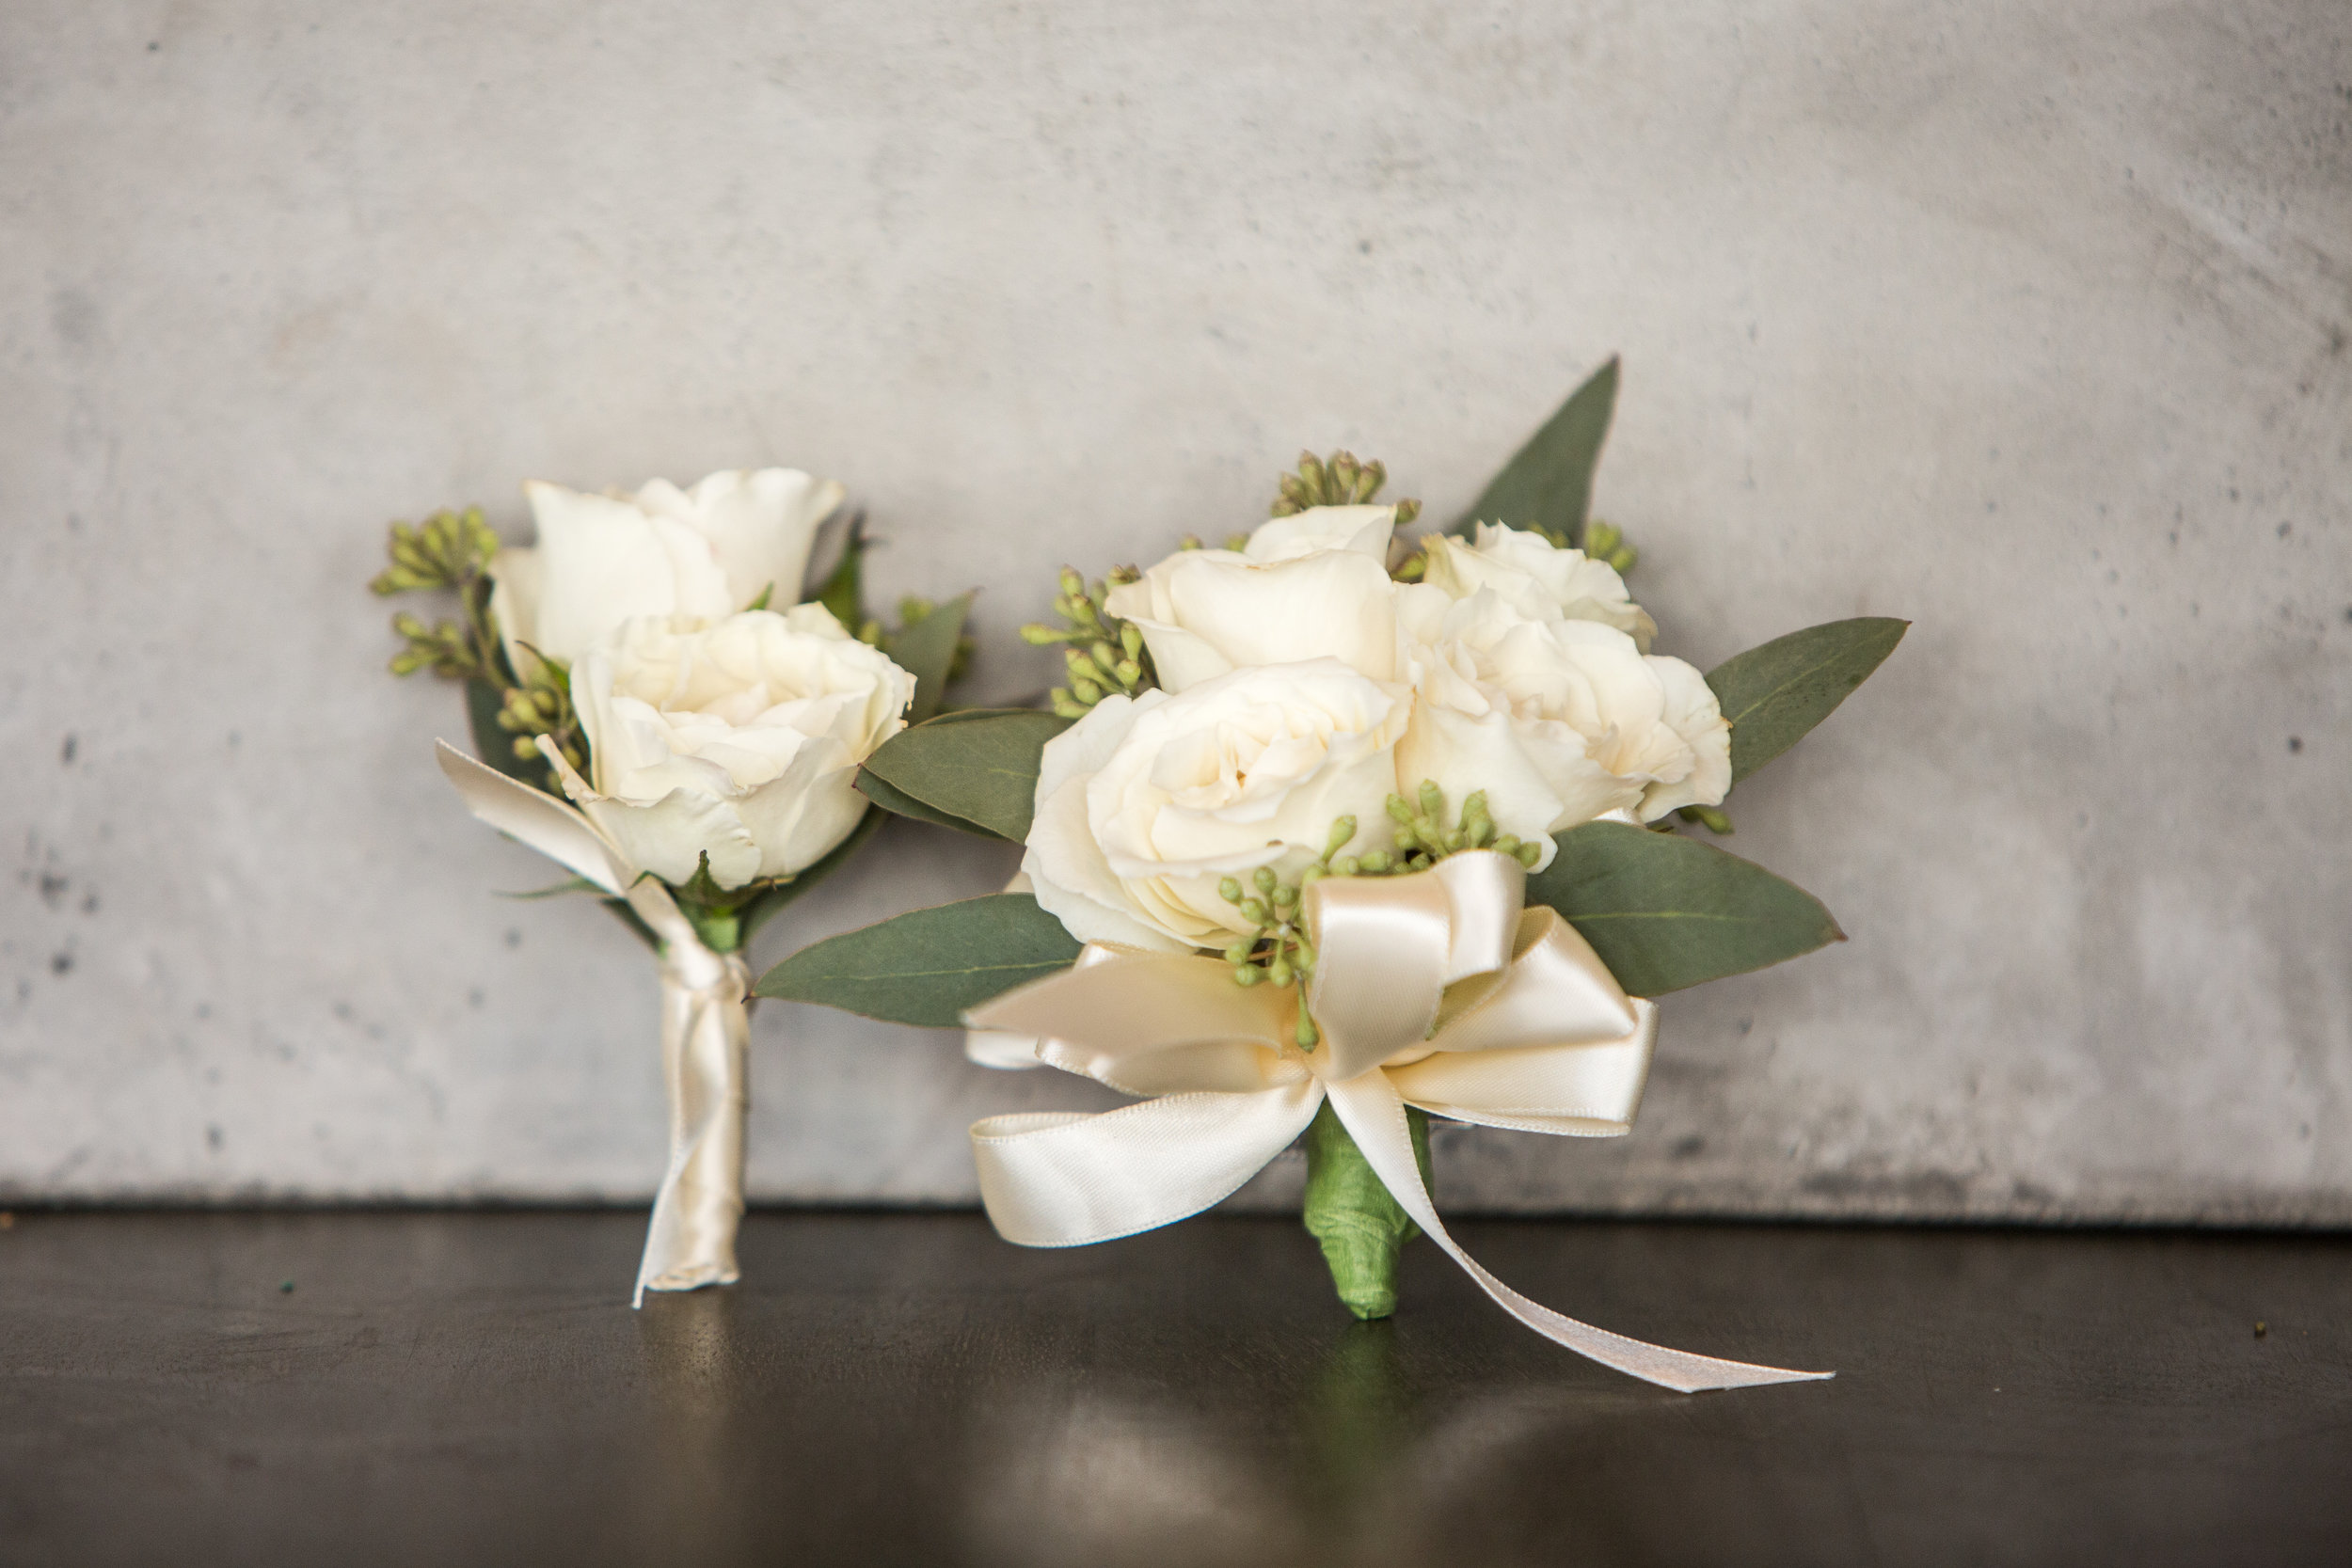 prom corsage boutonniere duo in whiteivory corsage 35 boutonniere 15 double peach rose boutonniere - Garden Rose Boutonniere